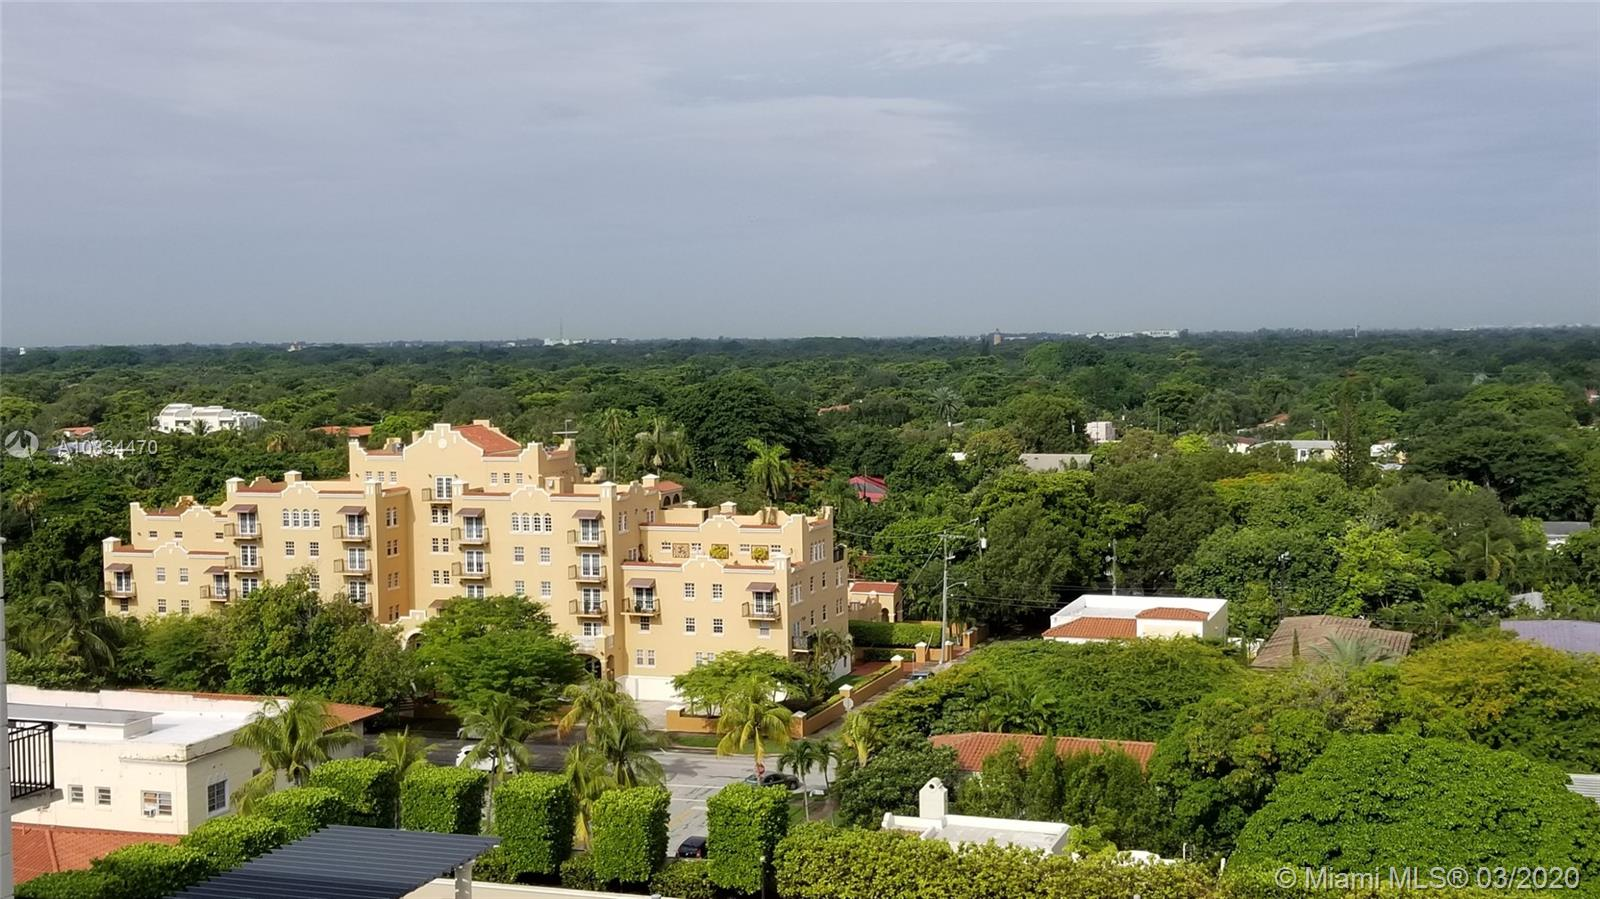 Unit Tenant occupied until May 31, 2020. Beautiful furnished Condo in the heart of Coral Gables conveniently located minutes away from Miracle Mile restaurants, shops and businesses, urban life as its best. Spacious unit offers 2 bedrooms and 2 baths, 2 parking spaces side by side. Amenities include Concierge, great room, fitness center, beautiful pool and lounge area. Unit furnished by TUI Lifestyle